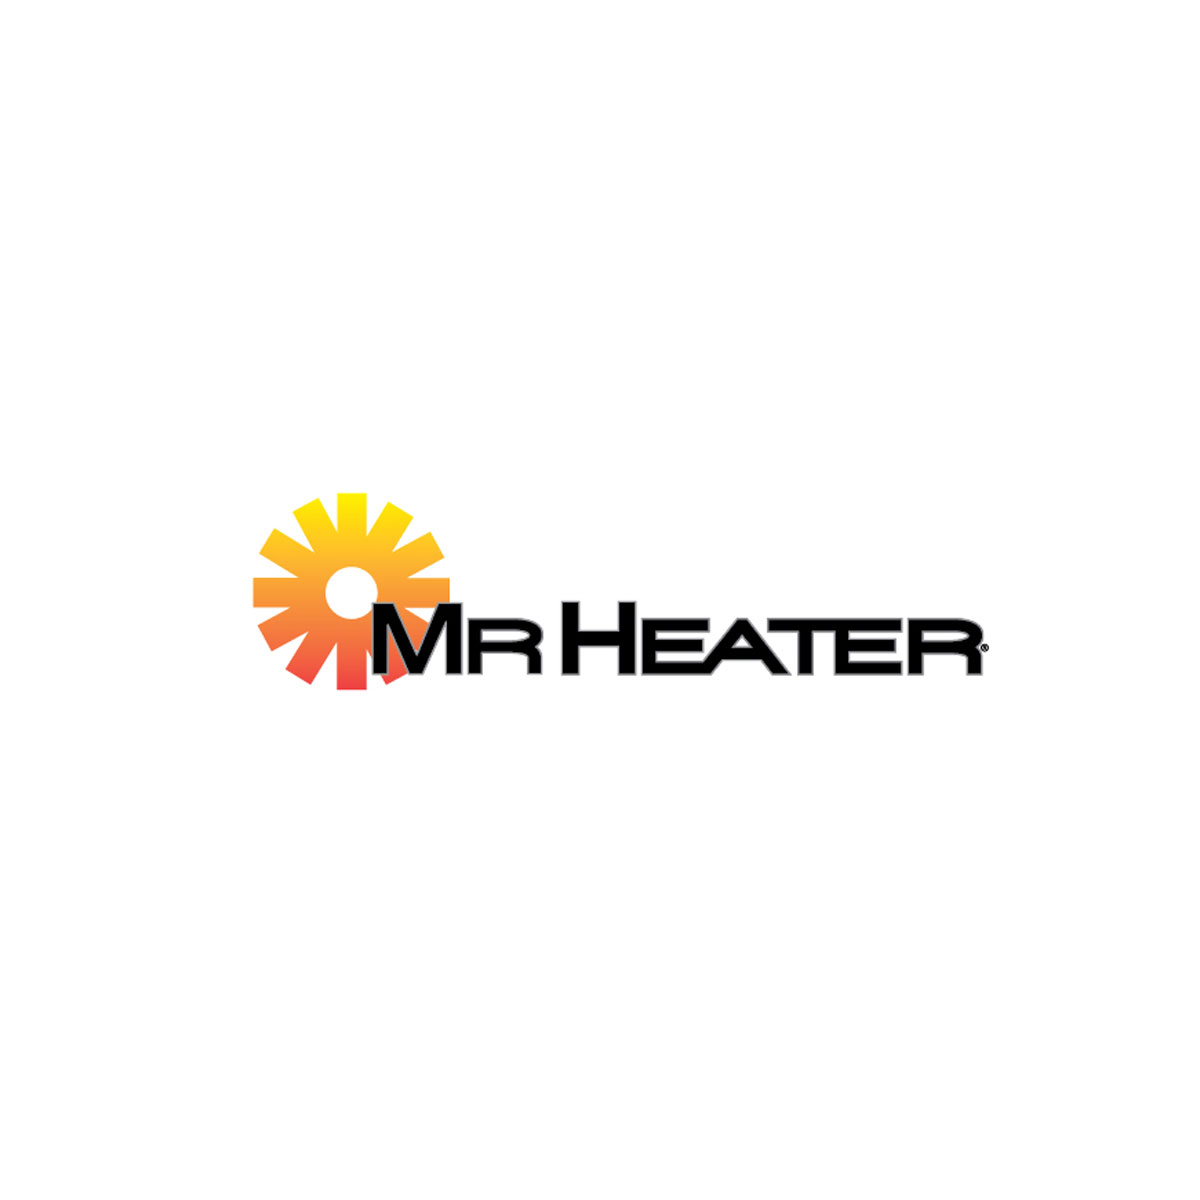 Mr Heater logo